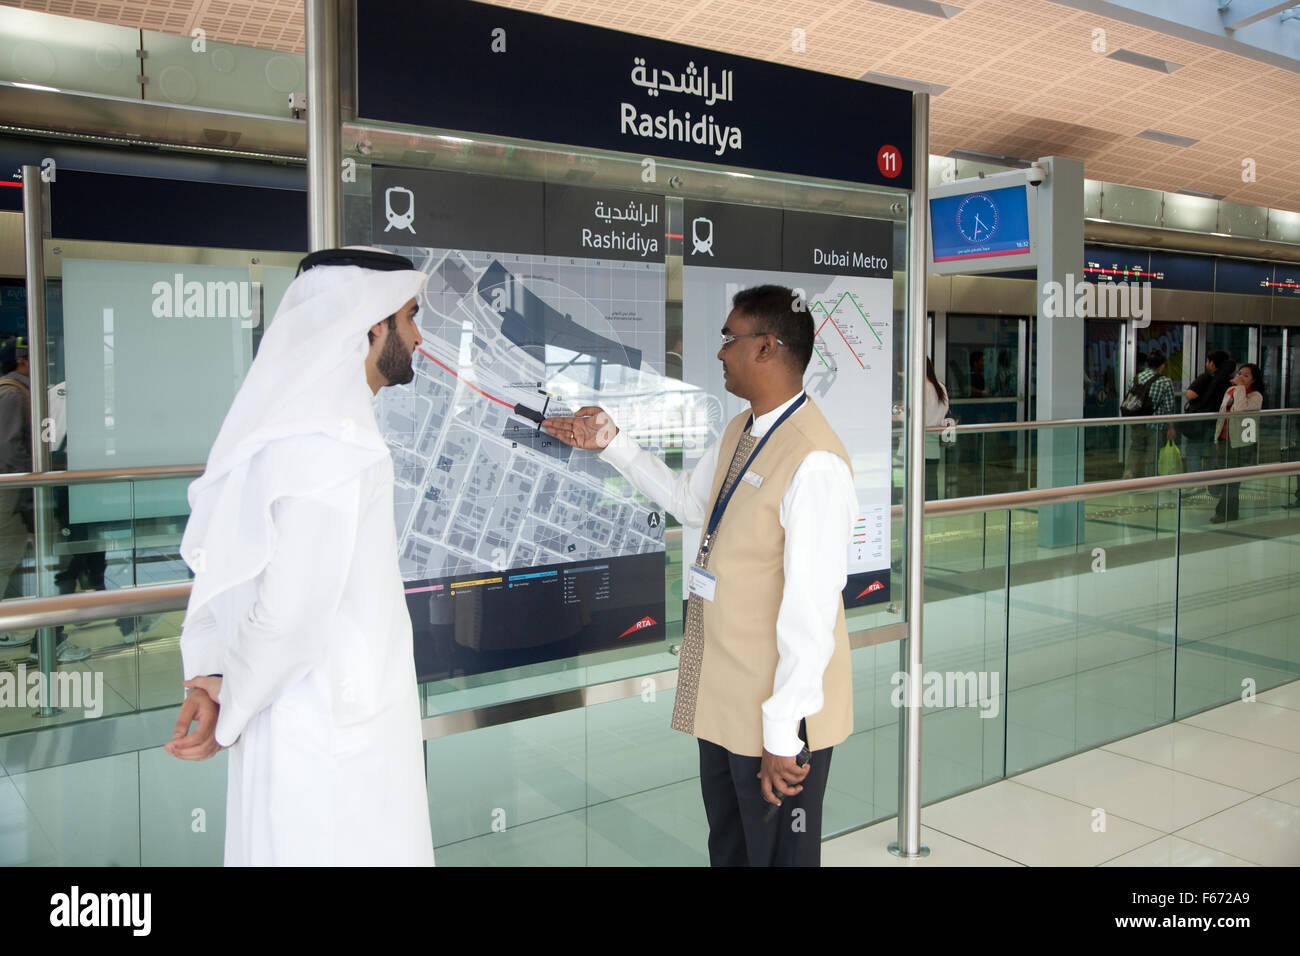 Arab man being given information from staff member of the Dubai Metro - Stock Image